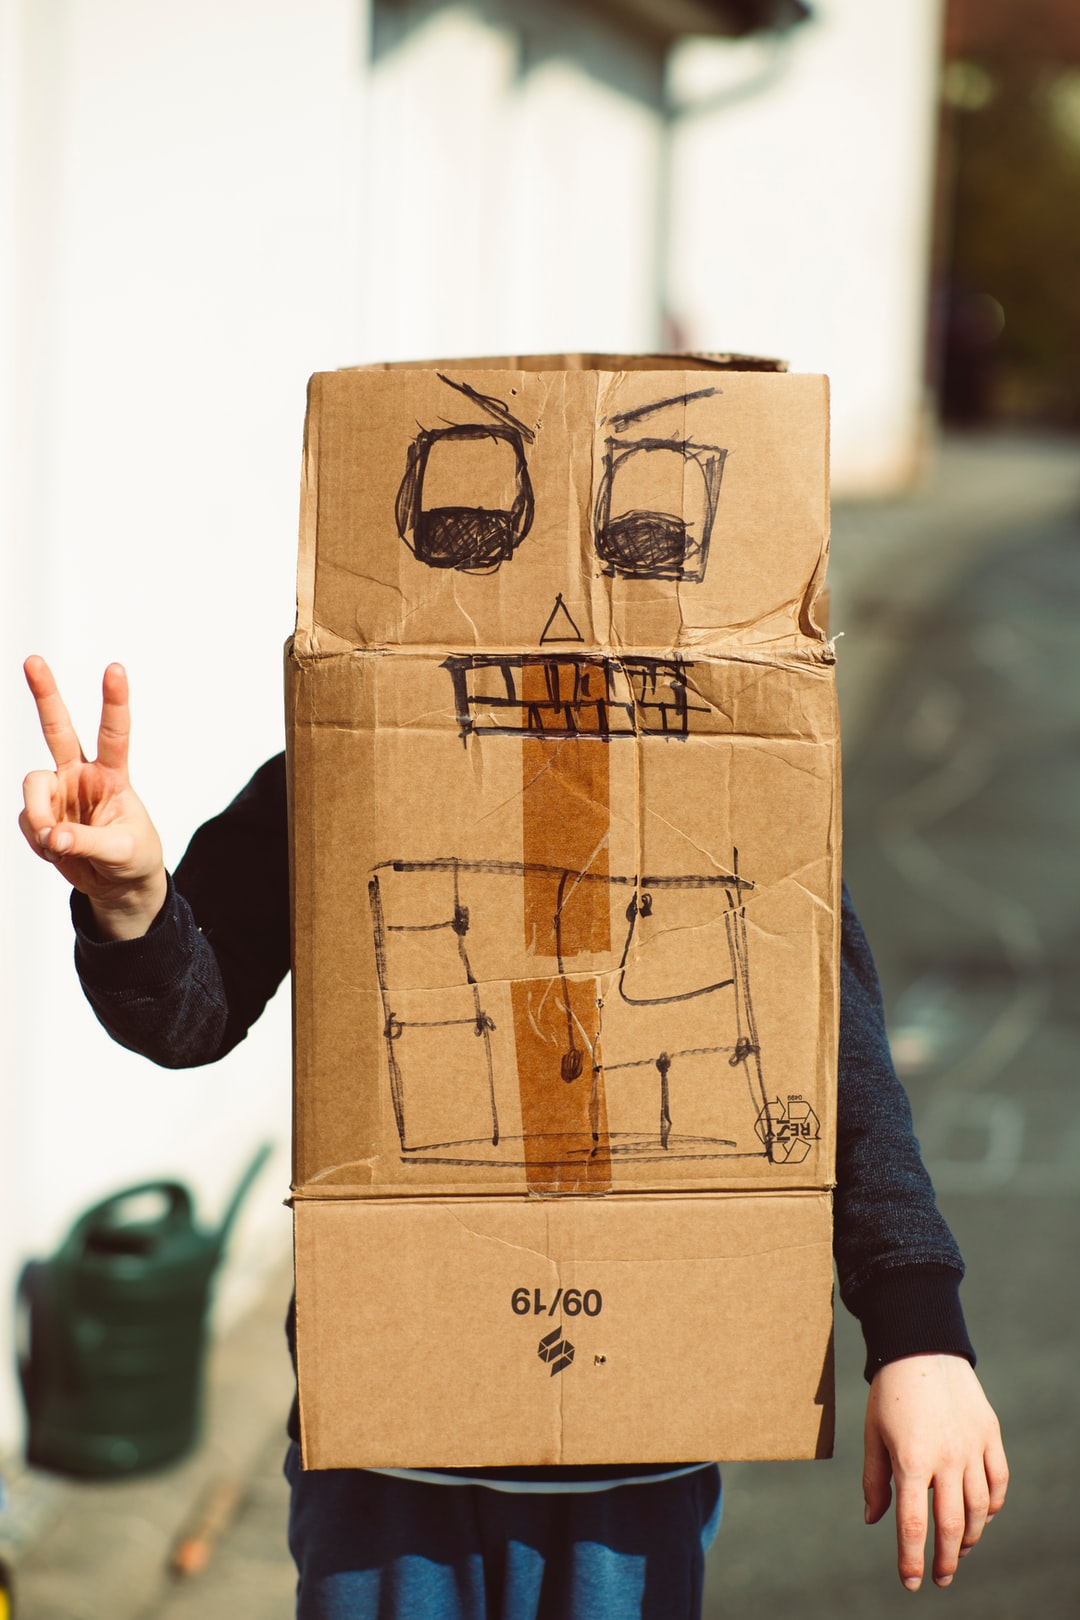 #stayhome – Boy with creative handmade cardboard box roboter simulation. Made with Canon 5d Mark III and analog vintage lens, Leica Summicron-R 2.0 90mm (Year: 1981)